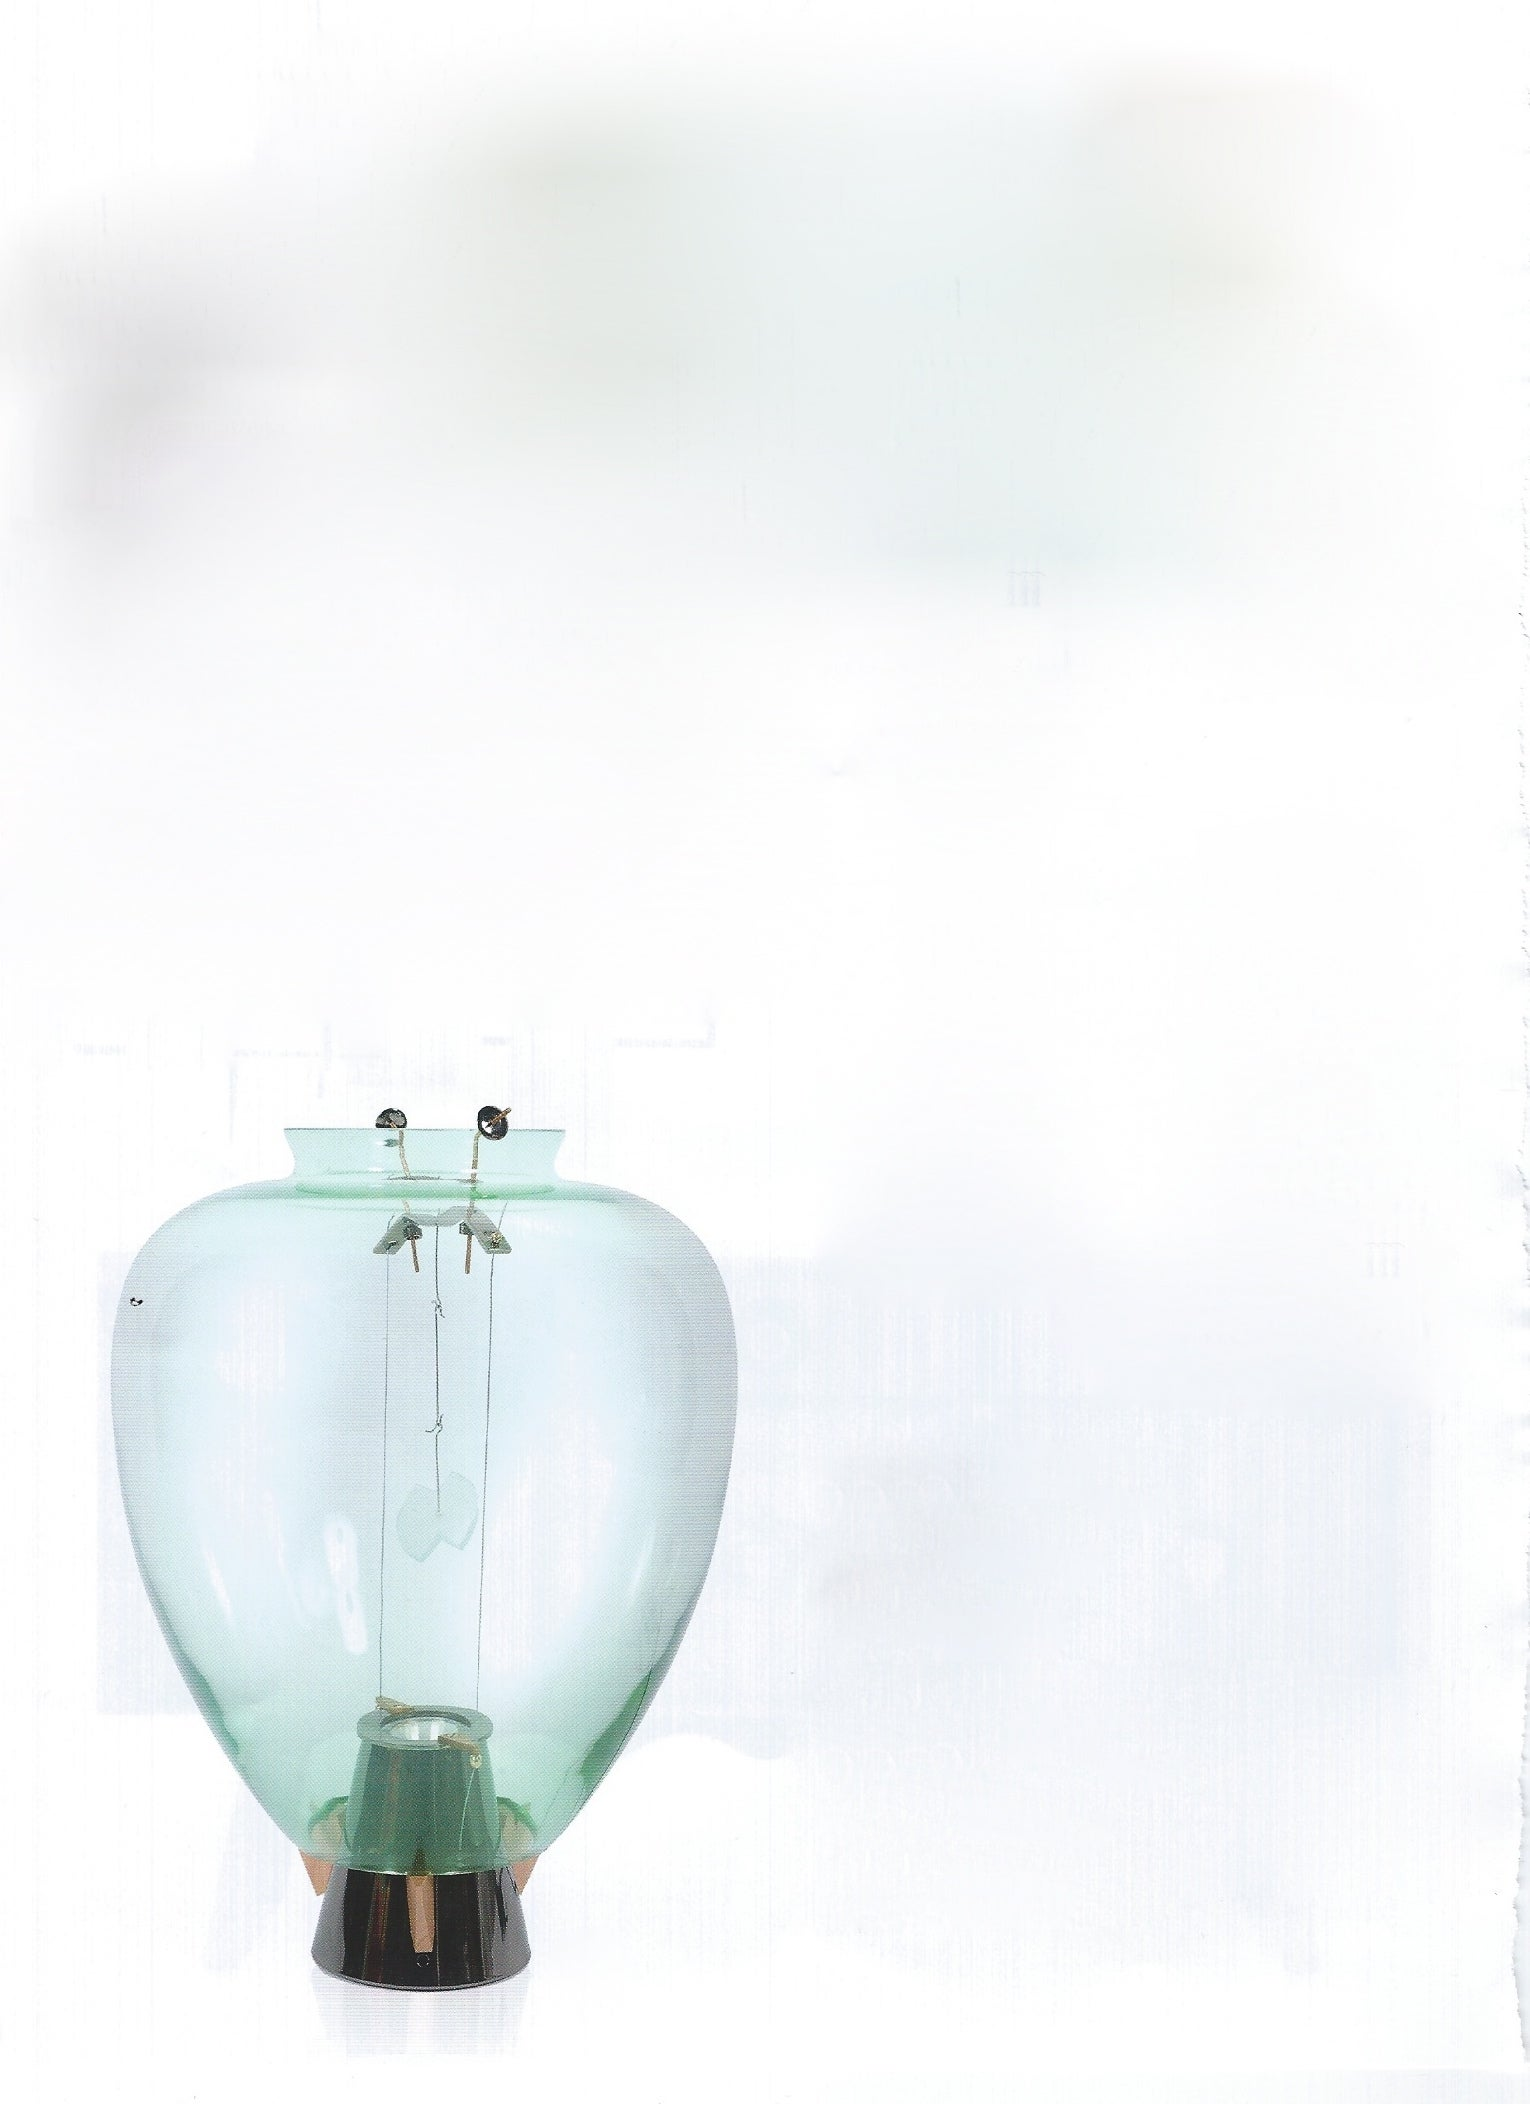 Table lamp model Veronese, manufactured by Barovier & Toso Italy 1984.